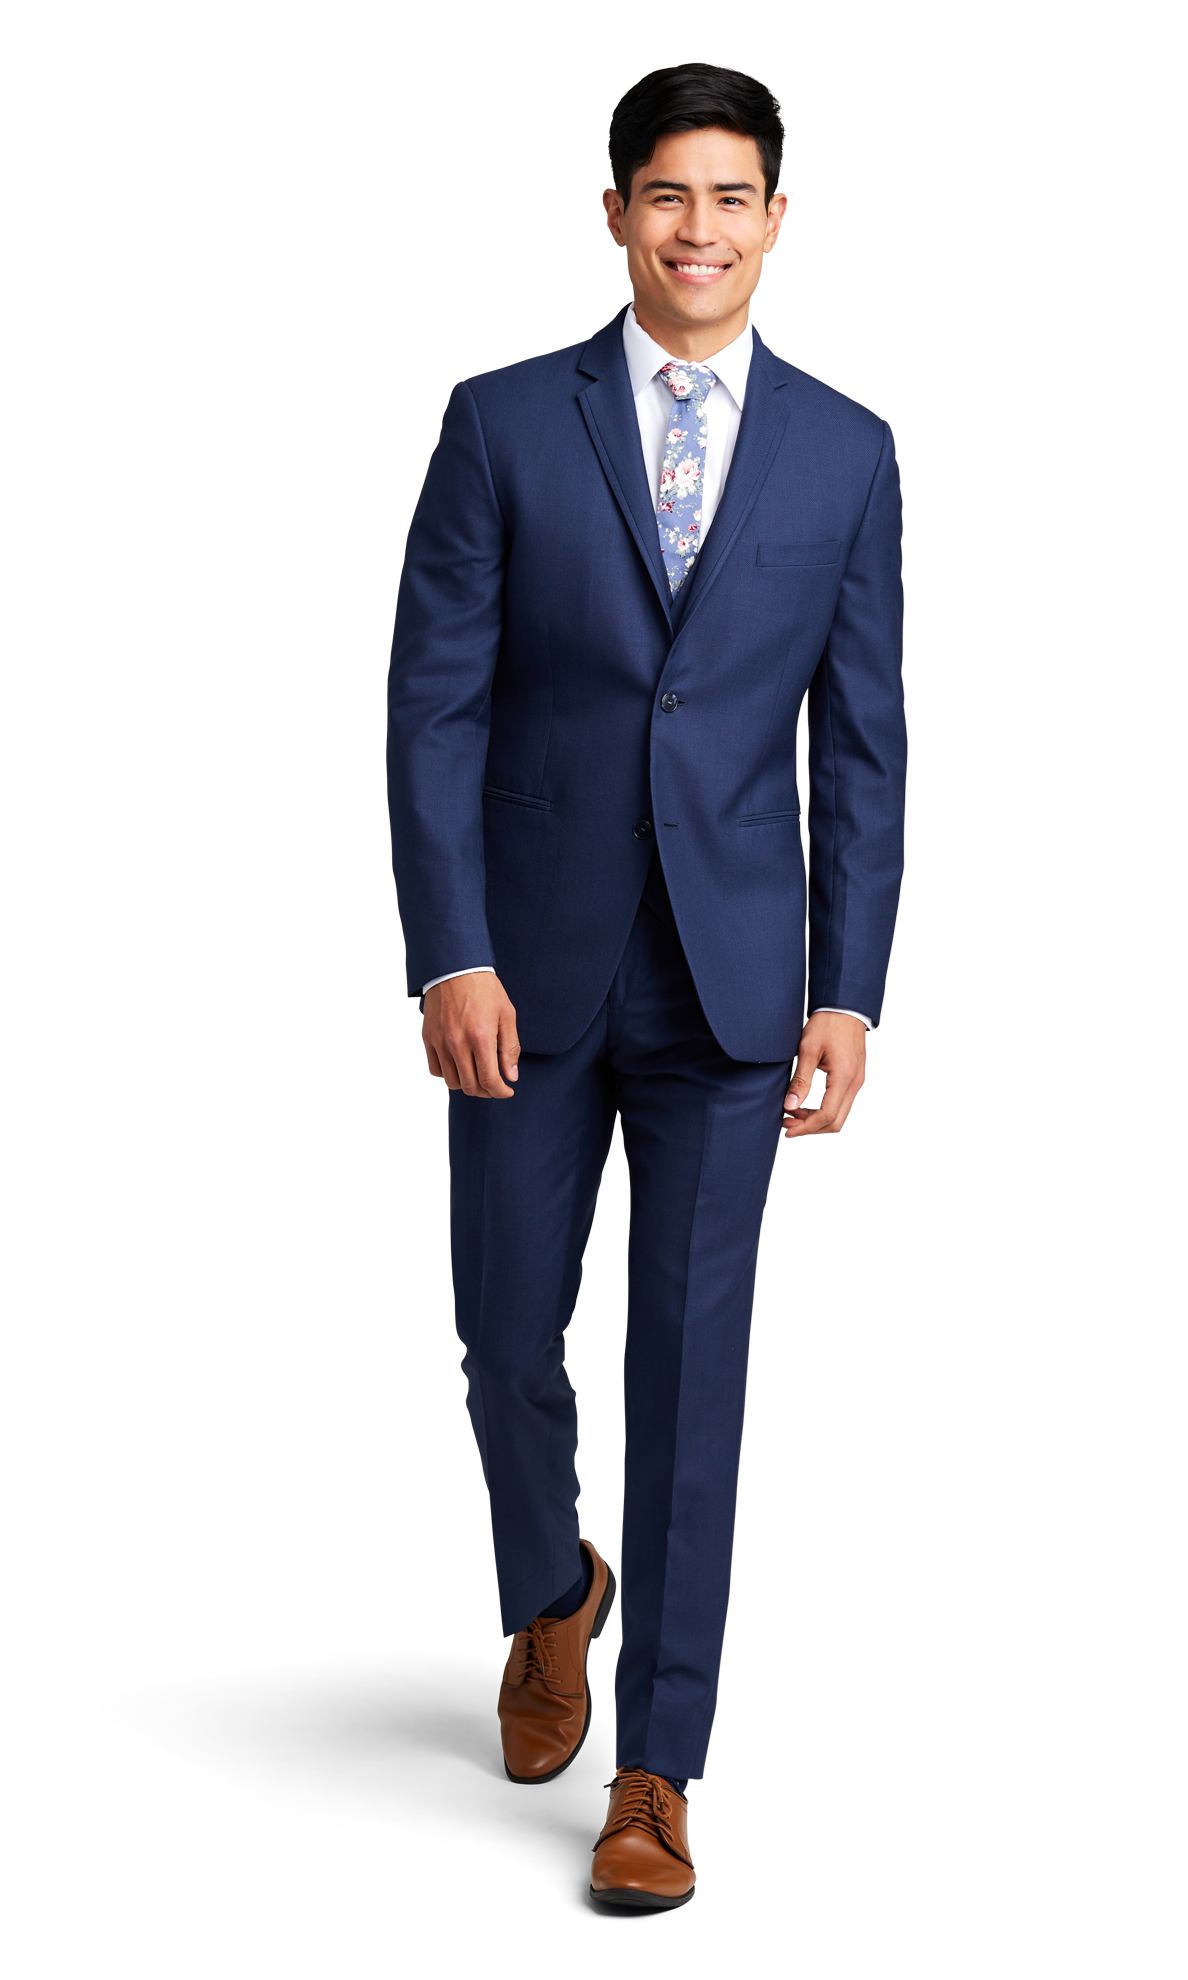 Dark Blue Notch Lapel Suit Online Rental 1